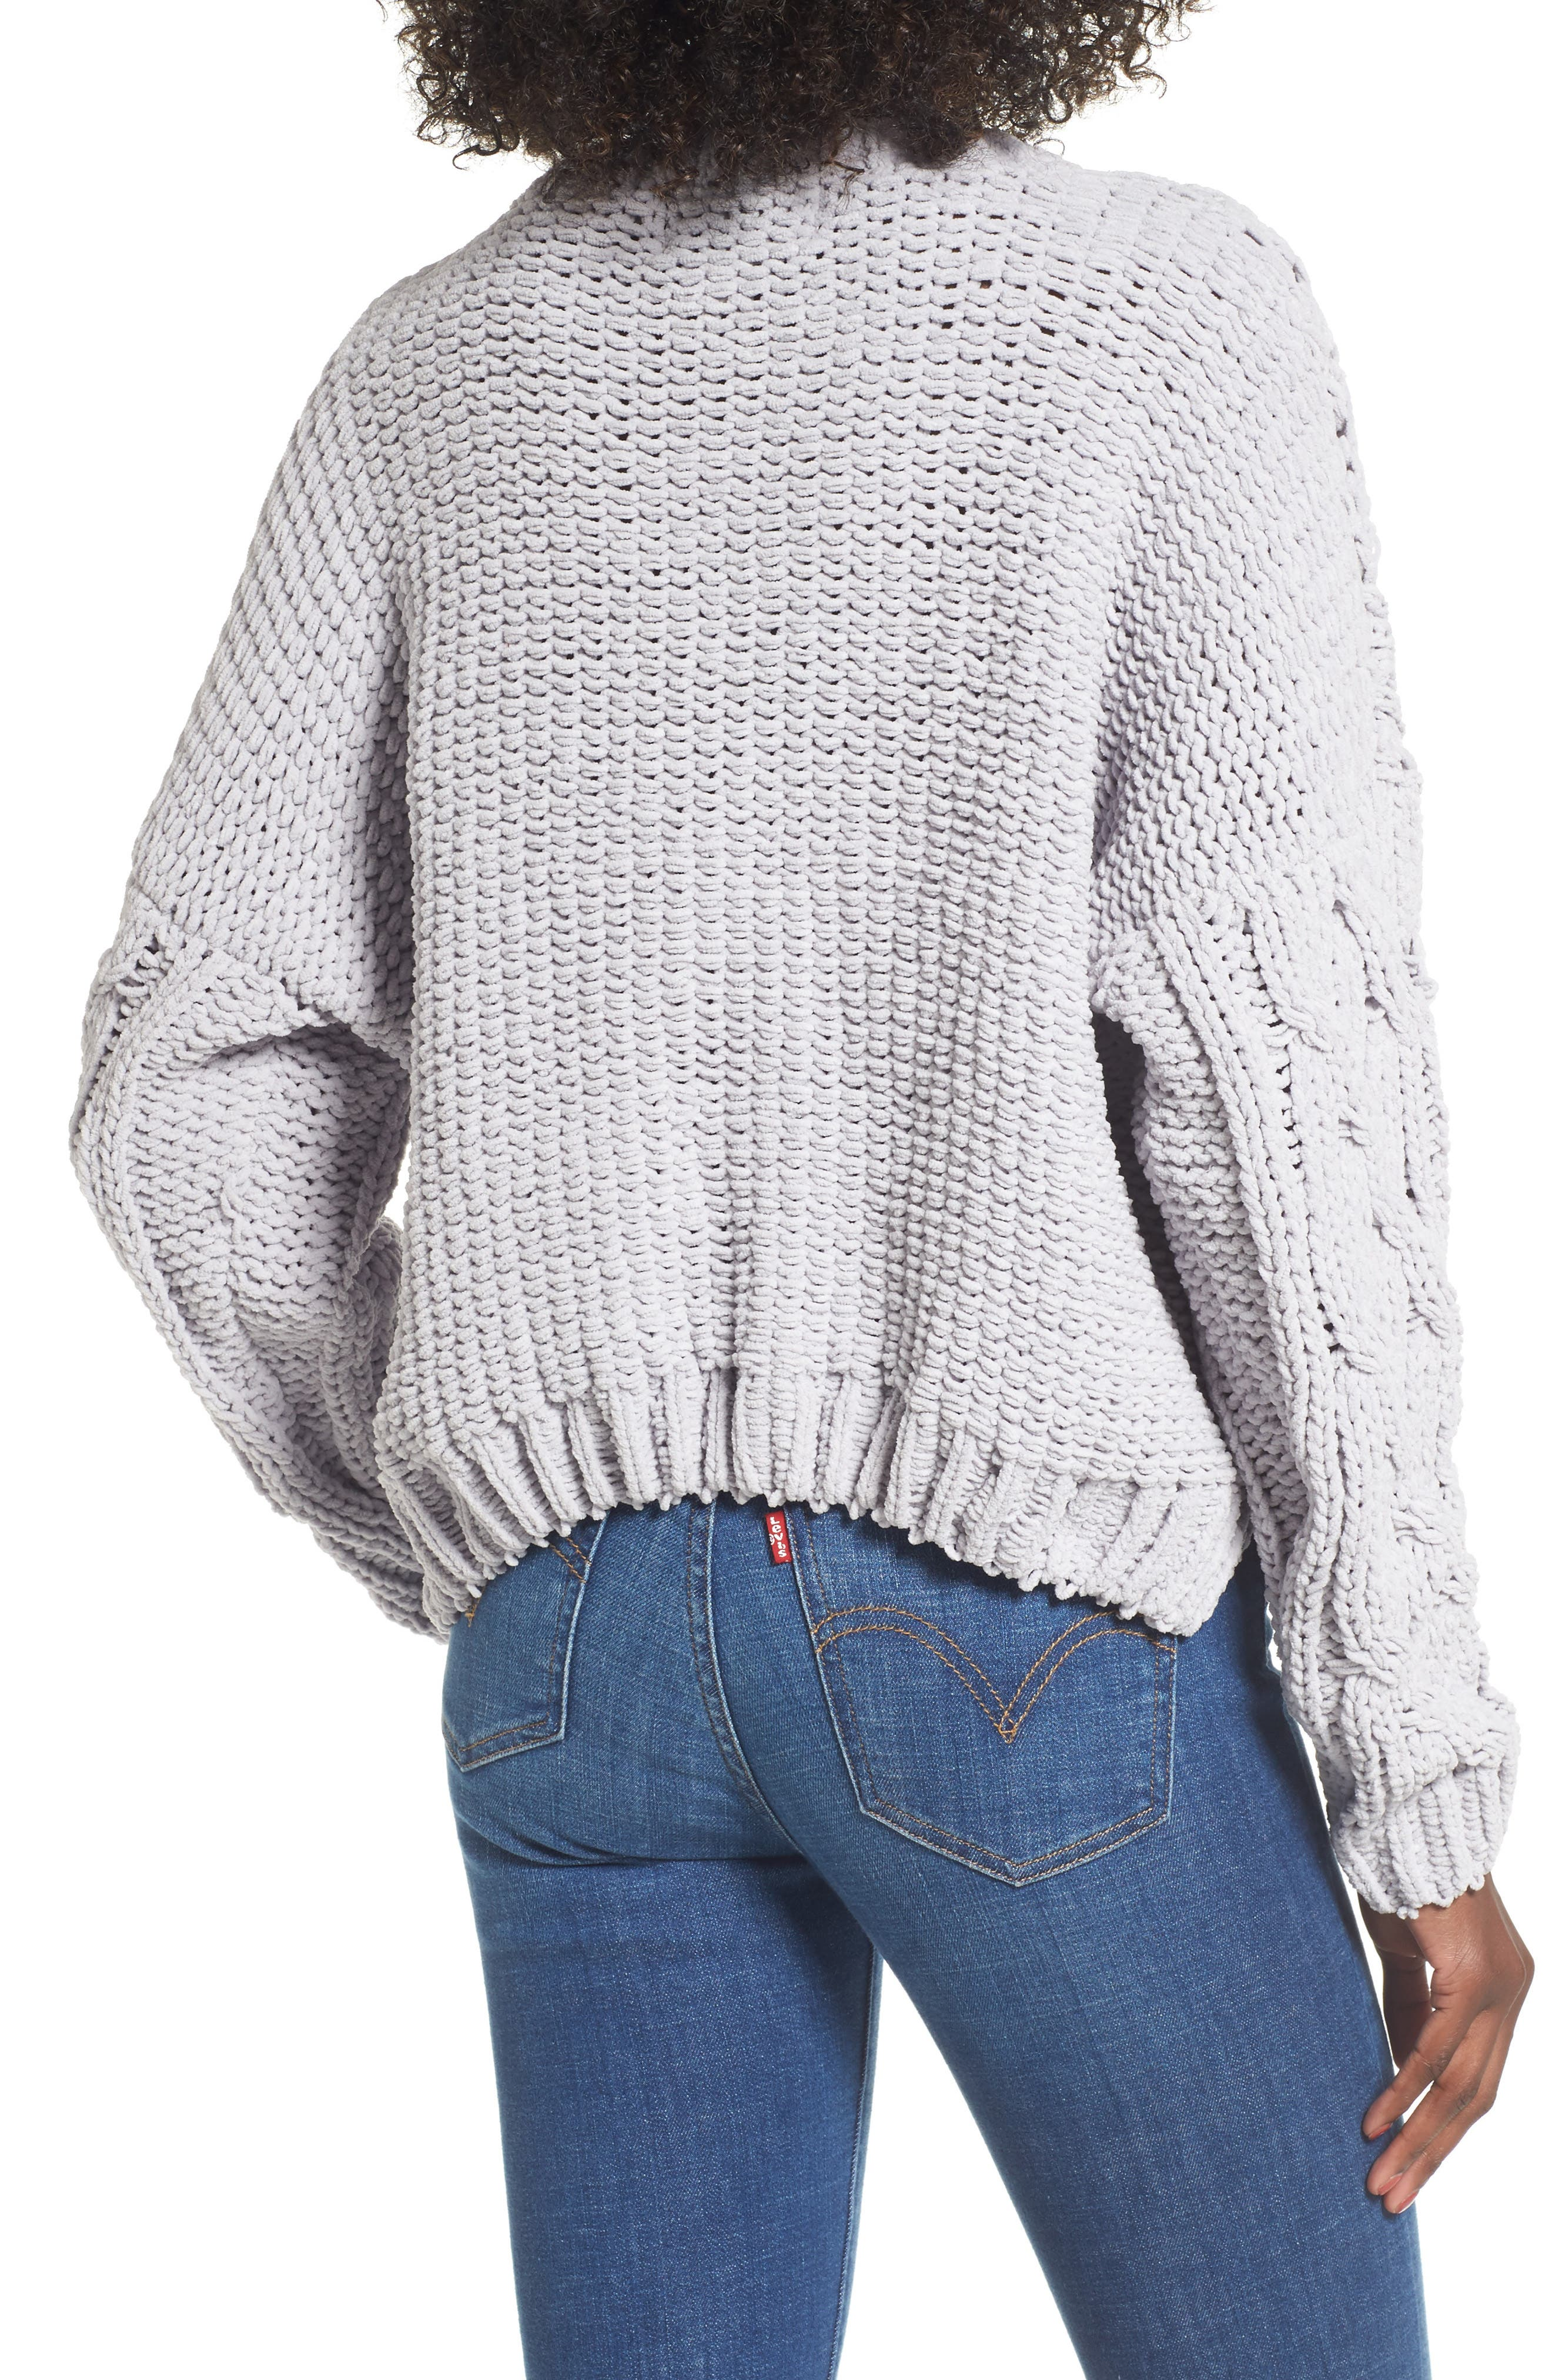 Cozy Crewneck Sweater,                             Alternate thumbnail 2, color,                             022